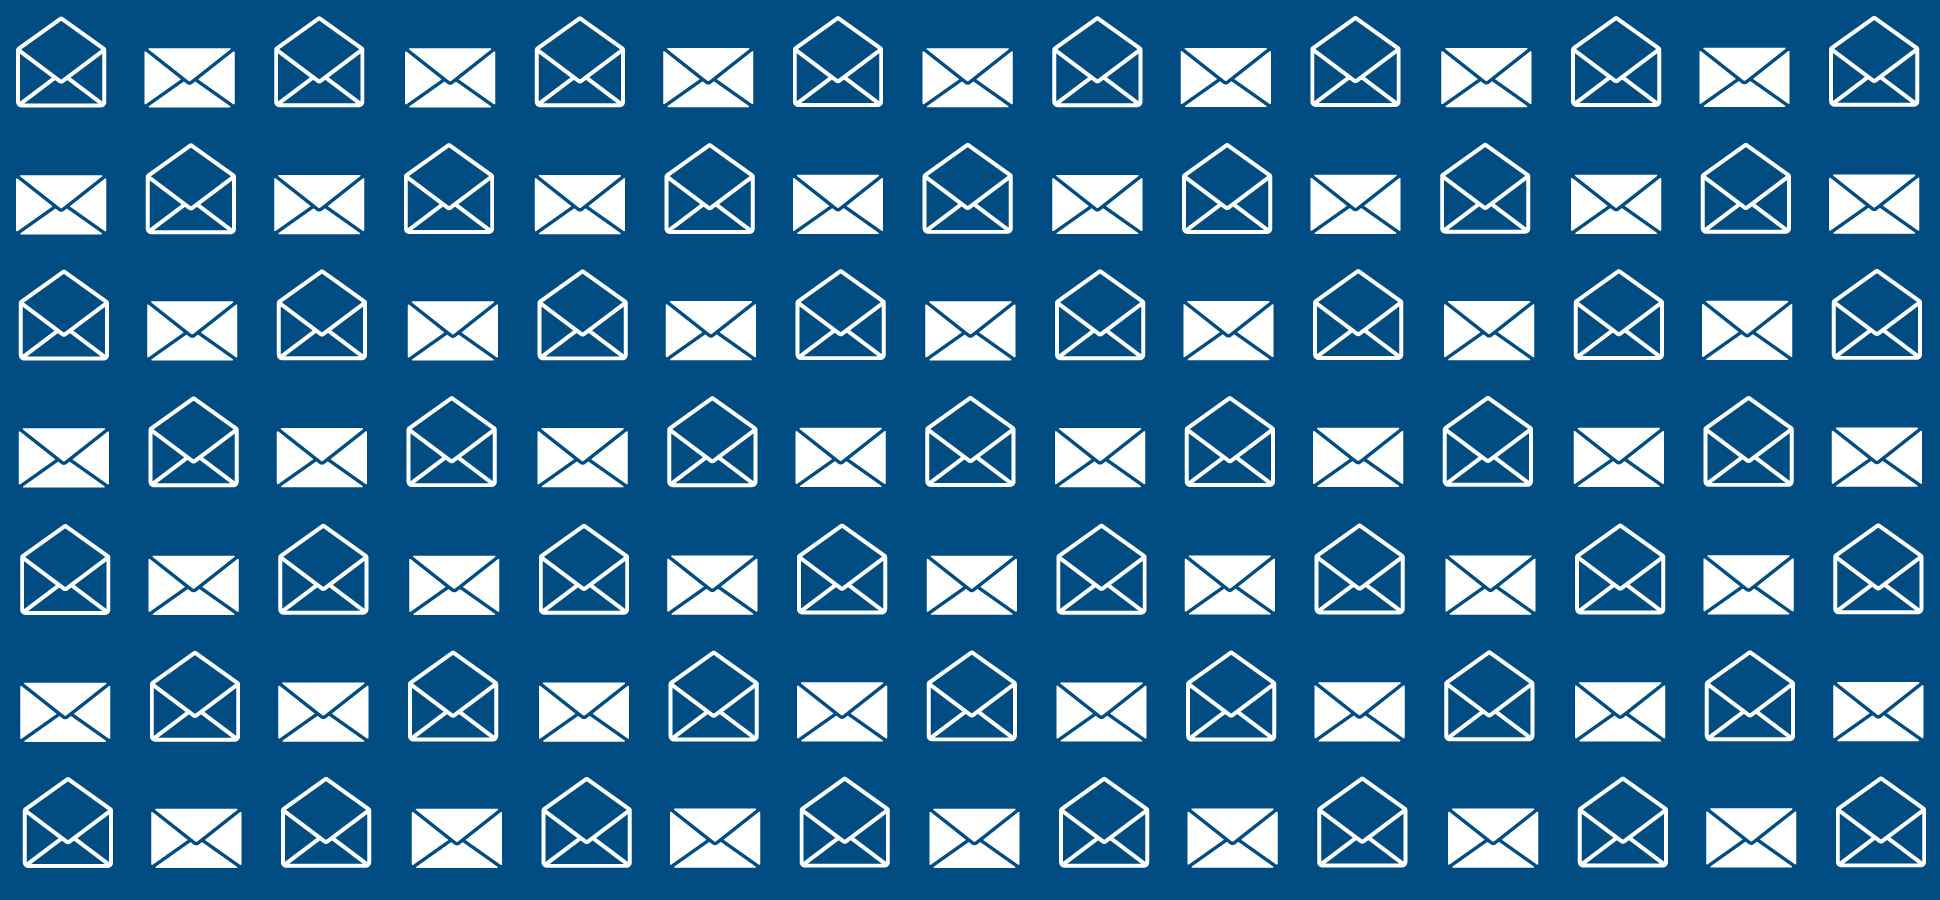 Your Marketing Emails Stink--But These 10 Tips Will Make Them Better (Infographic)